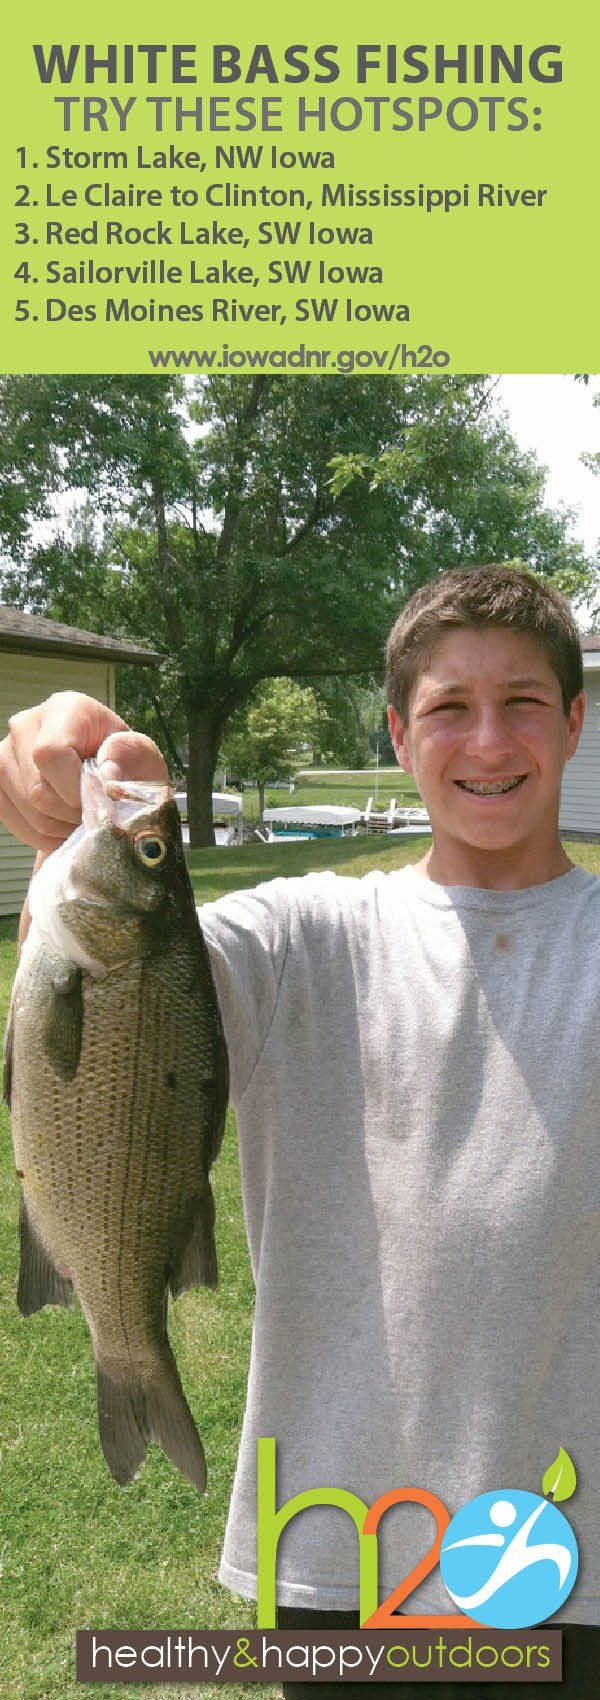 Try these great #Iowa hotspots for white bass #fishing!